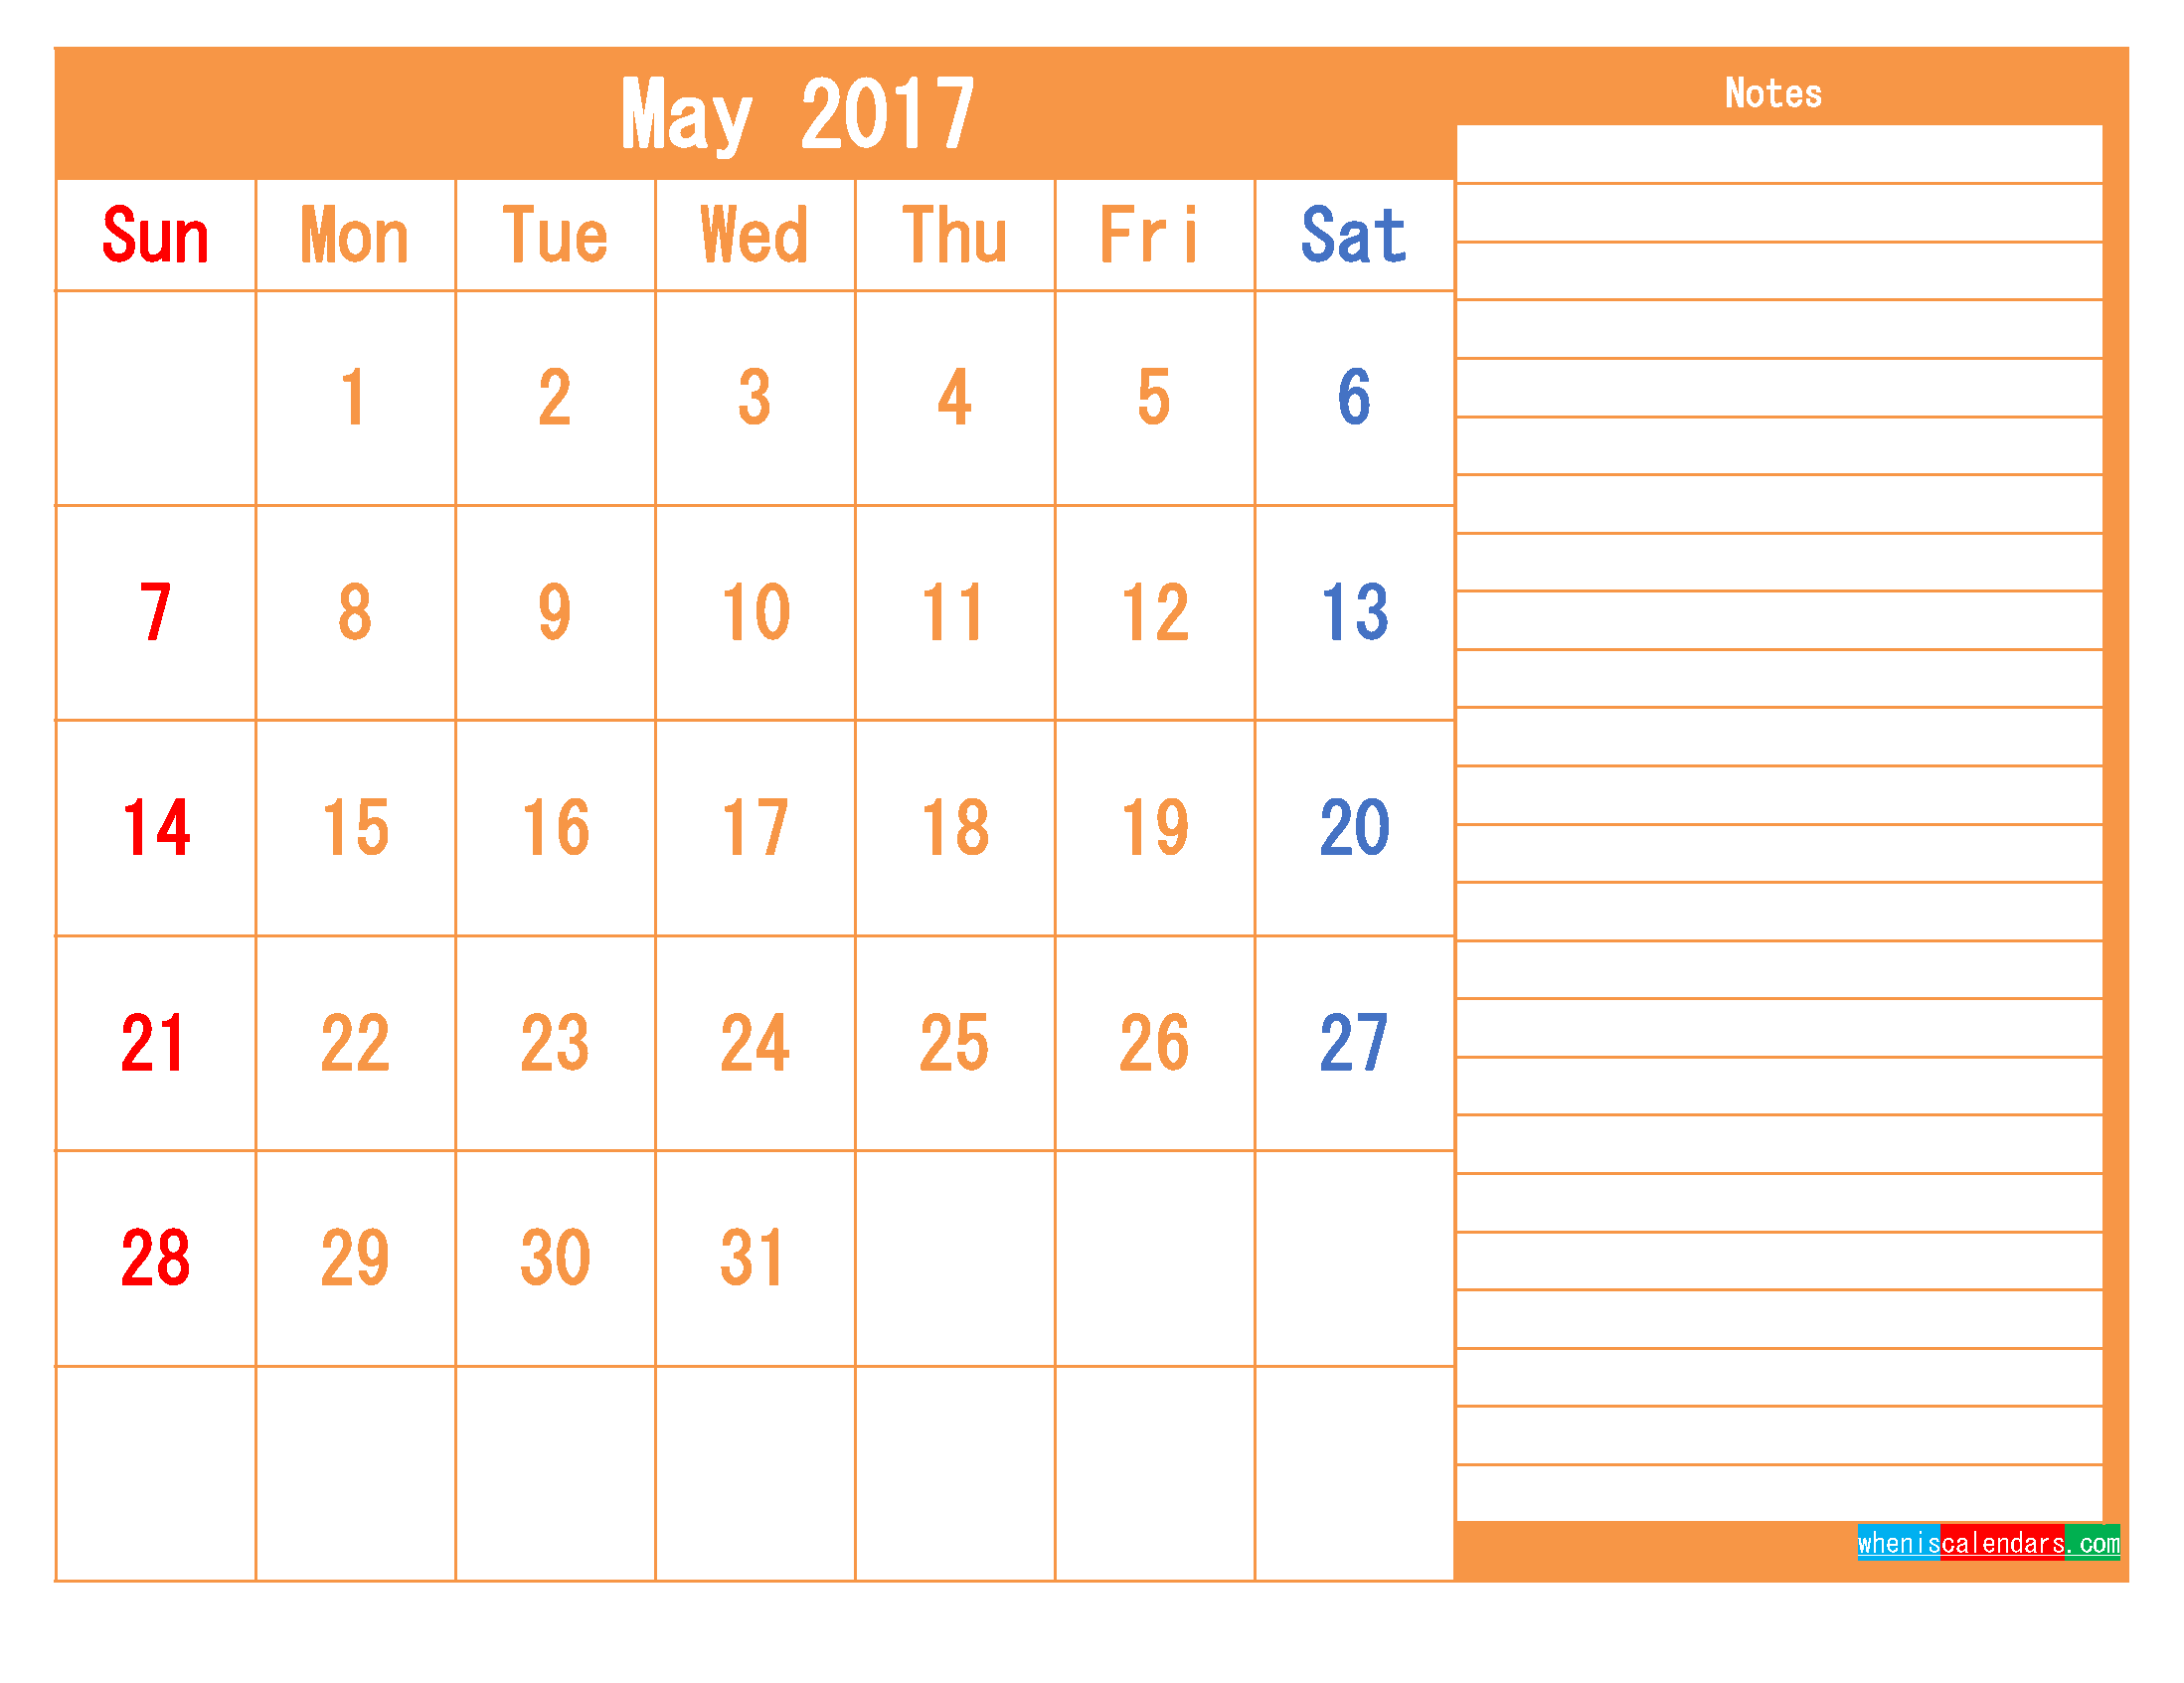 Free Printable Calendar 2017 May PDF and Image